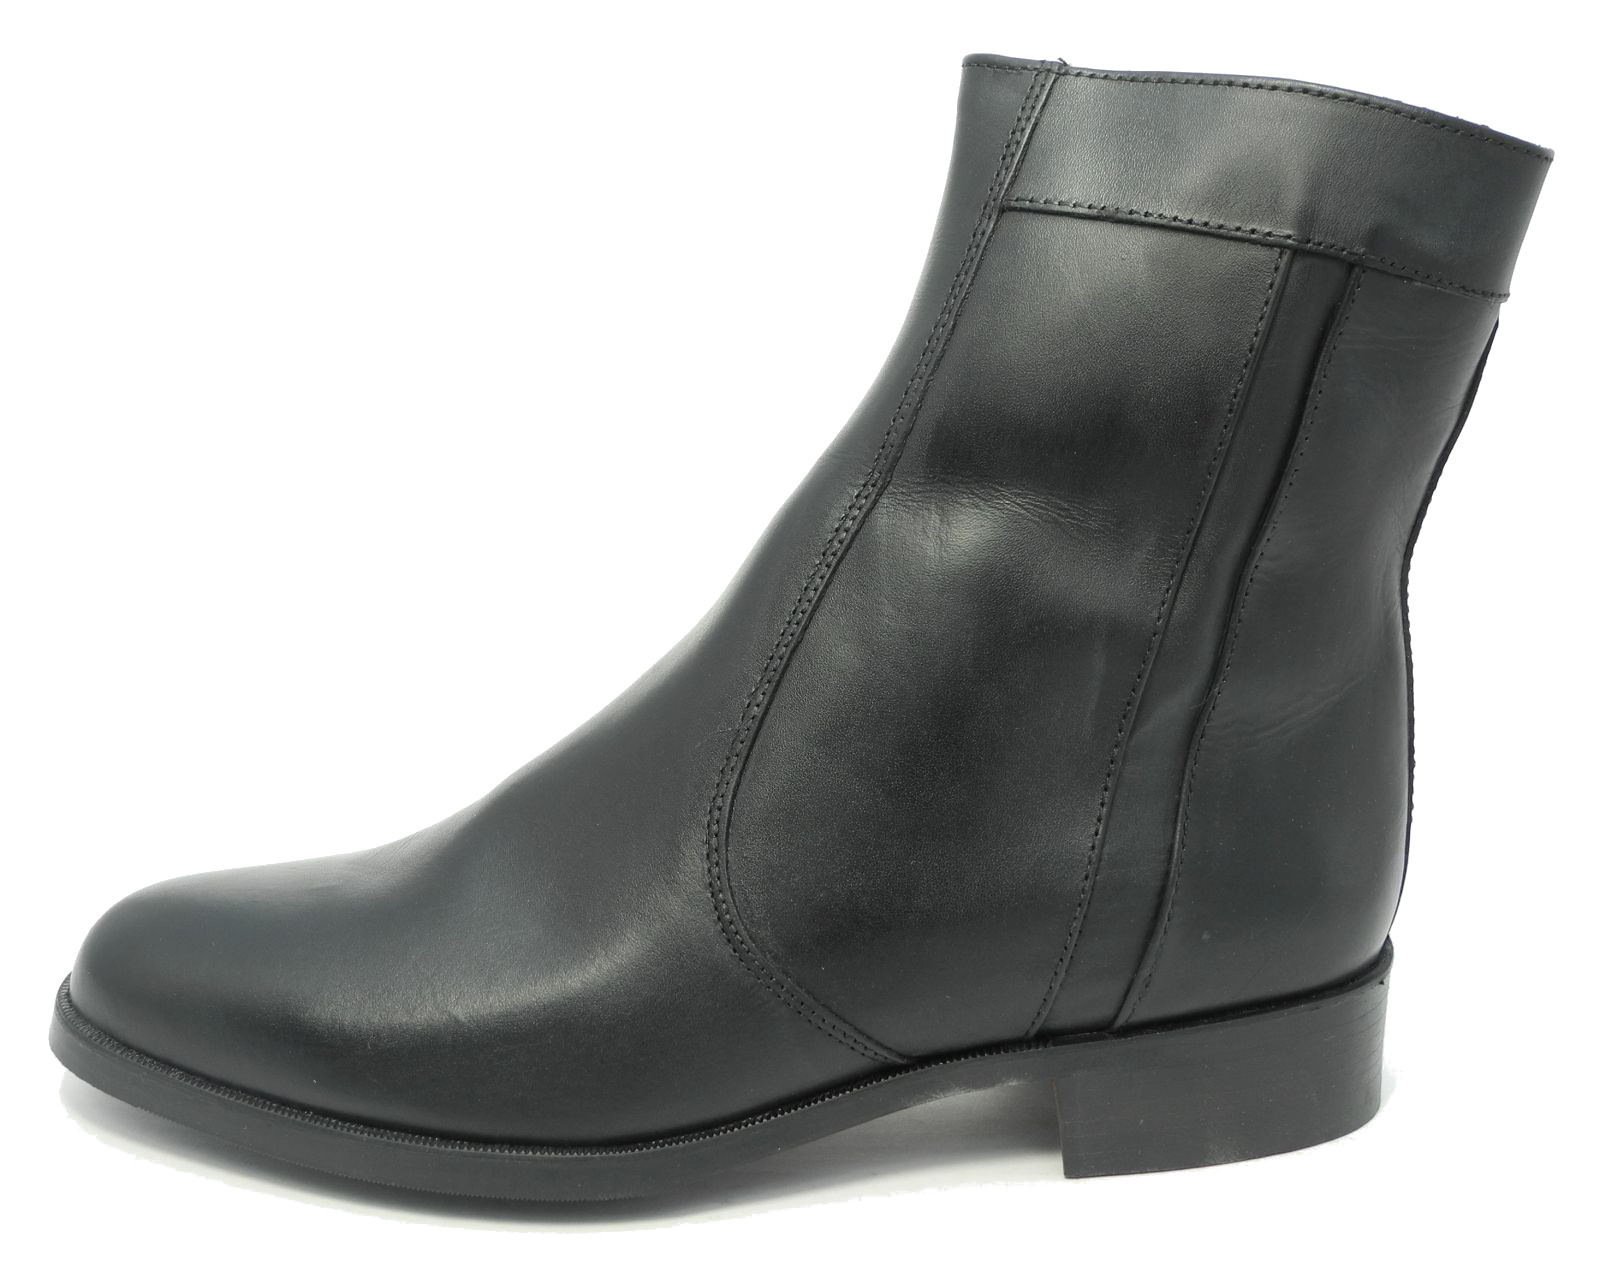 Mens Real Leather Zipped Chelsea Ankle 6 Boots Inside Zip Size 6 Ankle 7 8 9 10 11 12 f1e543